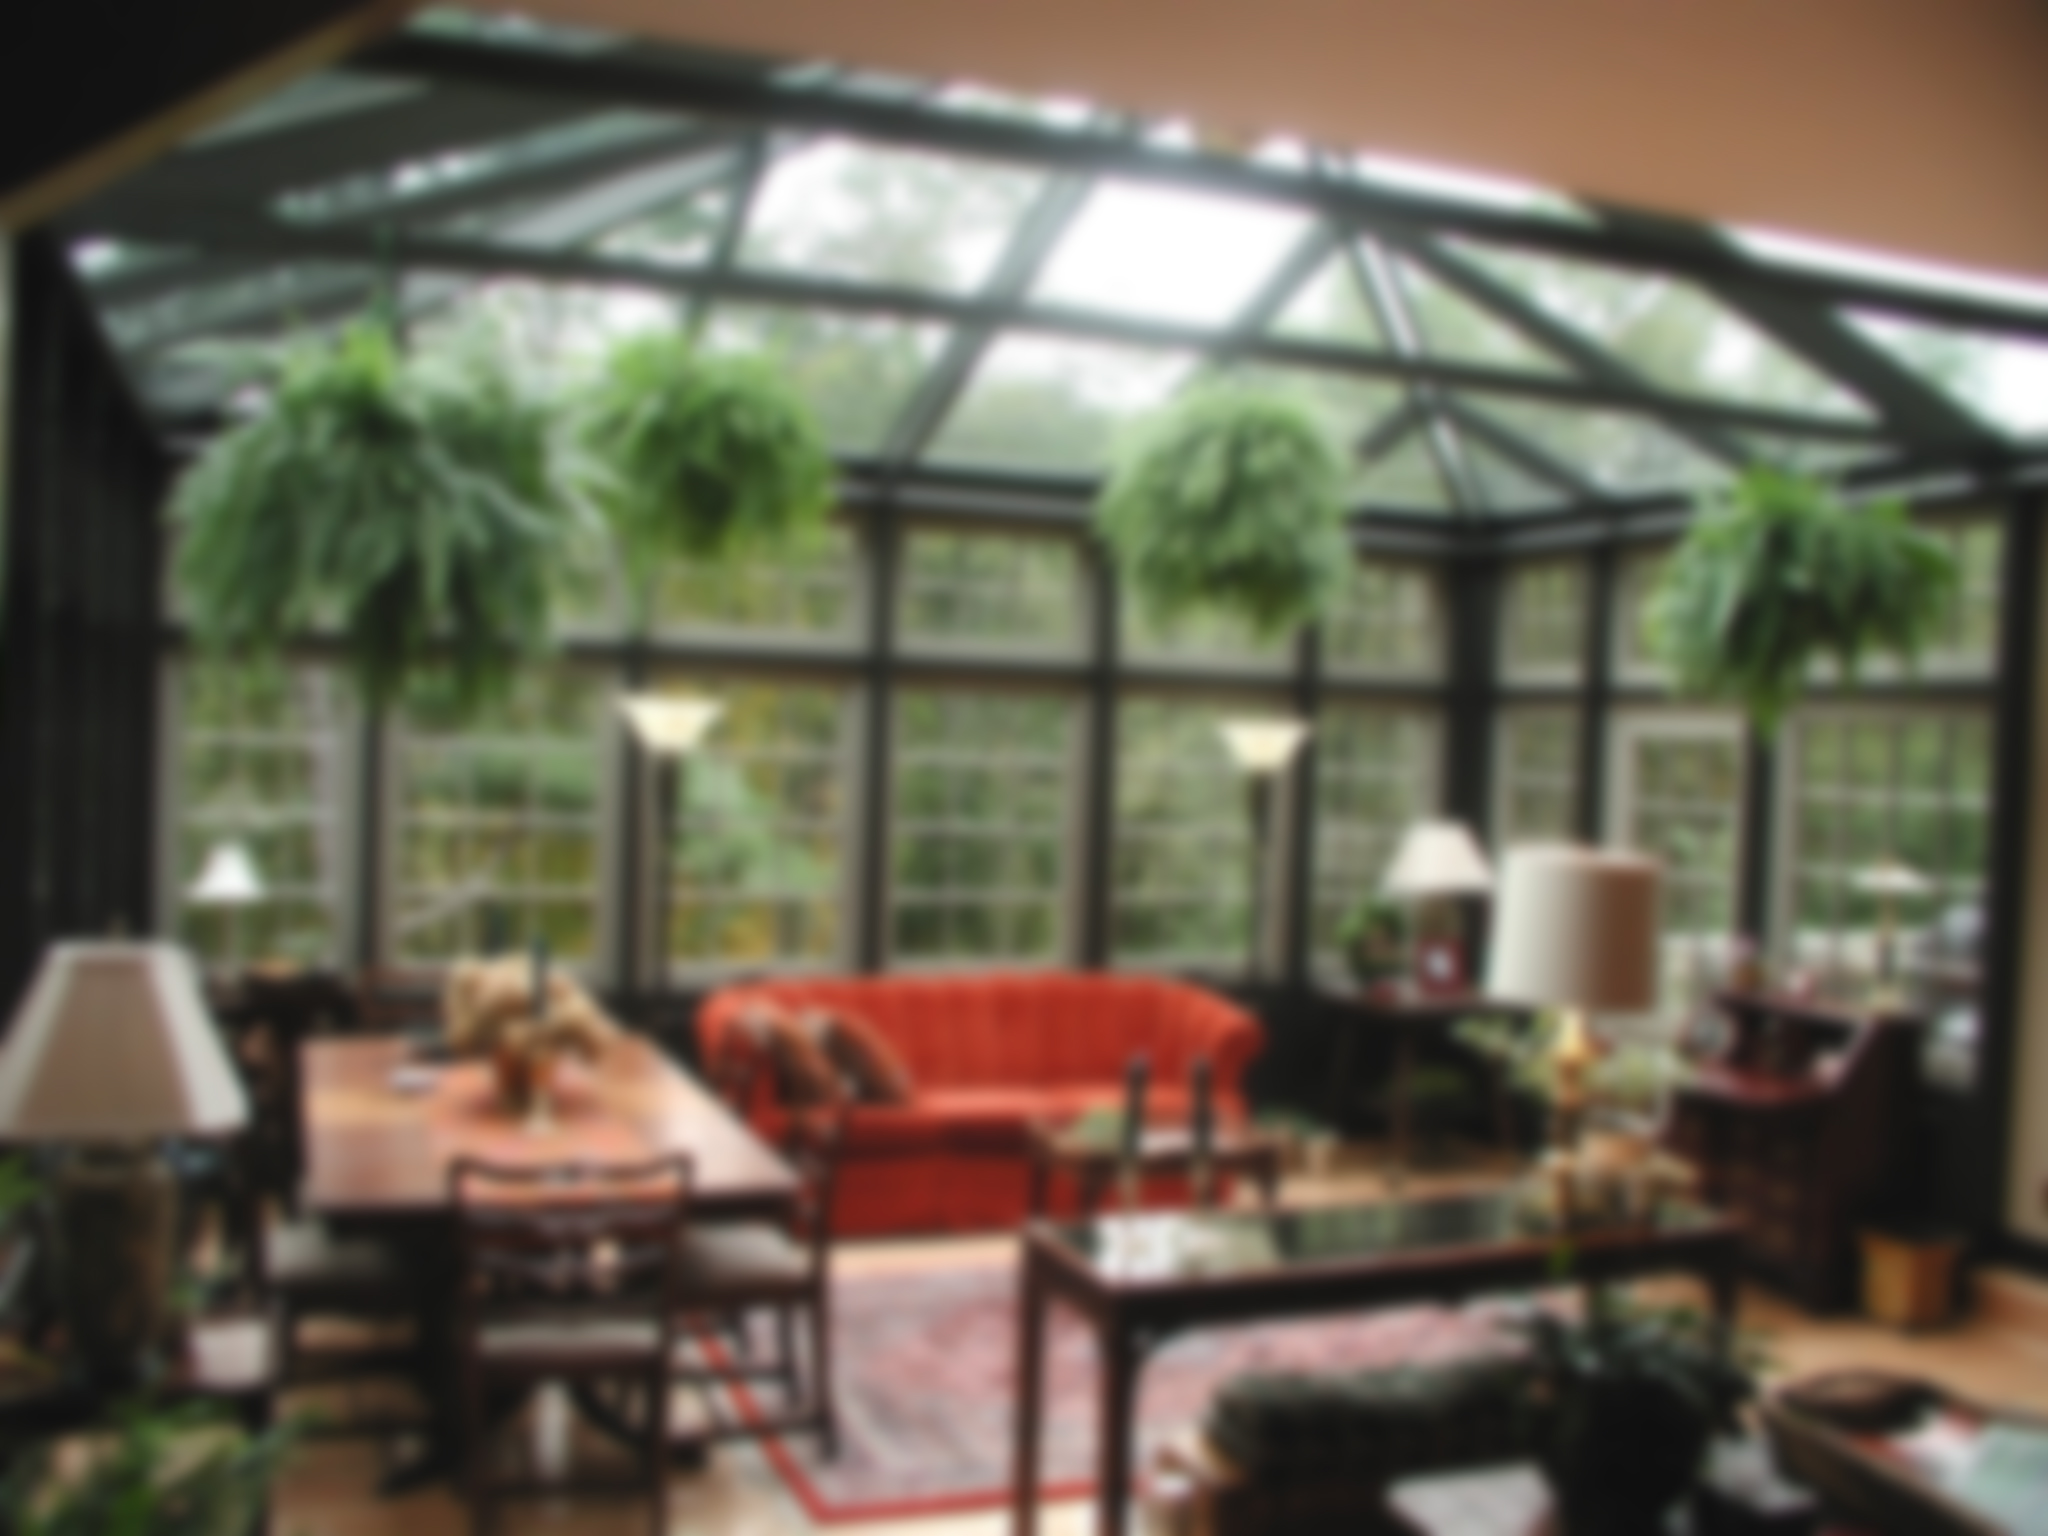 Conservatory-3-Blurred